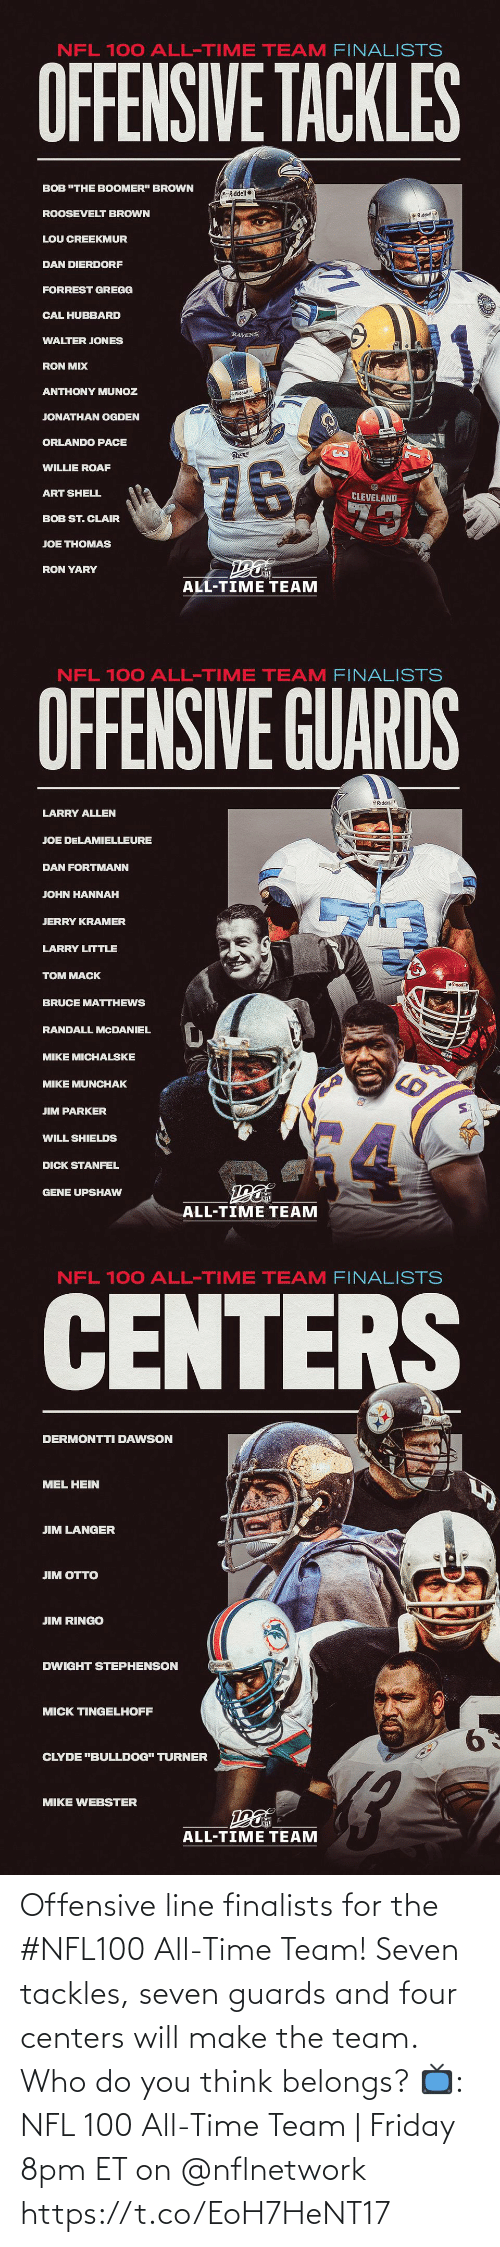 "All Time: NFL 100 ALL-TIME TEAM FINALISTS  OFFENSIVE TACKLES  BOB ""THE BOOMER"" BROWN  Riddel  ROOSEVELT BROWN  O Riddell  LOU CREEKMUR  DAN DIERDORF  FORREST GREGG  CAL HUBBARD  RAVENS  WALTER JONES  RON MIX  ANTHONY MUNOZ  Riddell  JONATHAN OGDEN  ORLANDO PACE  Rams  76  WILLIE ROAF  ART SHELL  CLEVELAND  73  BOB ST. CLAIR  JOE THOMAS  RON YARY  ALL-TIME TEAM   NFL 100 ALL-TIME TEAM FINALISTS  OFFENSIVE GUARDS  Riddel  LARRY ALLEN  JOE DELAMIELLEURE  DAN FORTMANN  JOHN HANNAH  JERRY KRAMER  LARRY LITTLE  TOM MACK  BRUCE MATTHEWS  RANDALL MCDANIEL  MIKE MICHALSKE  MIKE MUNCHAK  JIM PARKER  WILL SHIELDS  DICK STANFEL  GENE UPSHAW  ALL-TIME TEAM   NFL 100 ALL-TIME TEAM FINALISTS  CENTERS  DERMONTTI DAWSON  MEL HEIN  JIM LANGER  ЛM OТTO  JIM RINGO  DWIGHT STEPHENSON  MICK TINGELHOFF  9.  CLYDE ""BULLDOG"" TURNER  MIKE WEBSTER  ALL-TIME TEAM Offensive line finalists for the #NFL100 All-Time Team!  Seven tackles, seven guards and four centers will make the team. Who do you think belongs?  📺: NFL 100 All-Time Team 